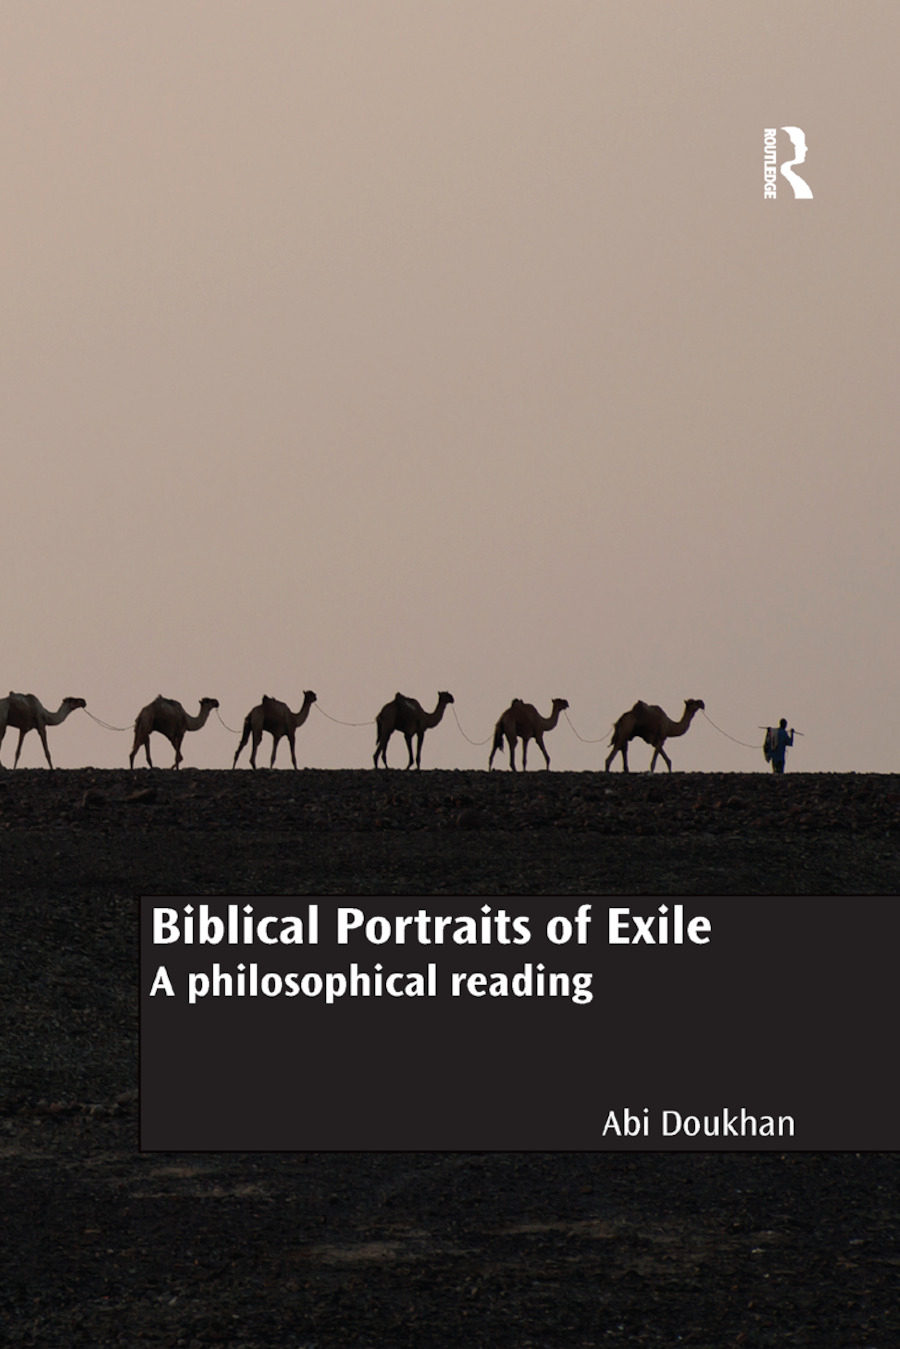 Biblical Portraits of Exile